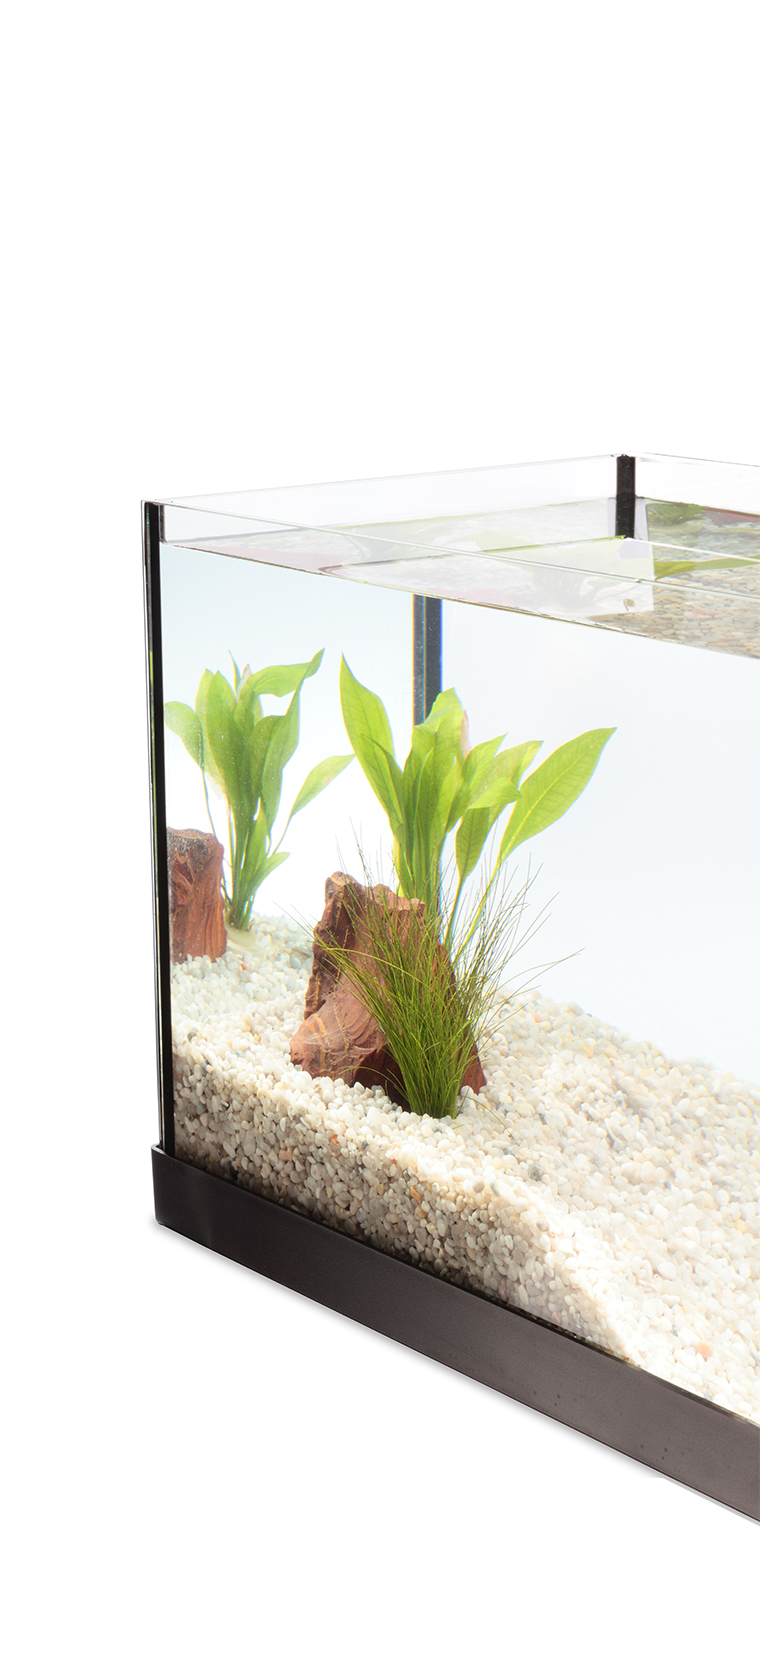 Corner of an aquarium with clear water, plants, rock and gravel.`